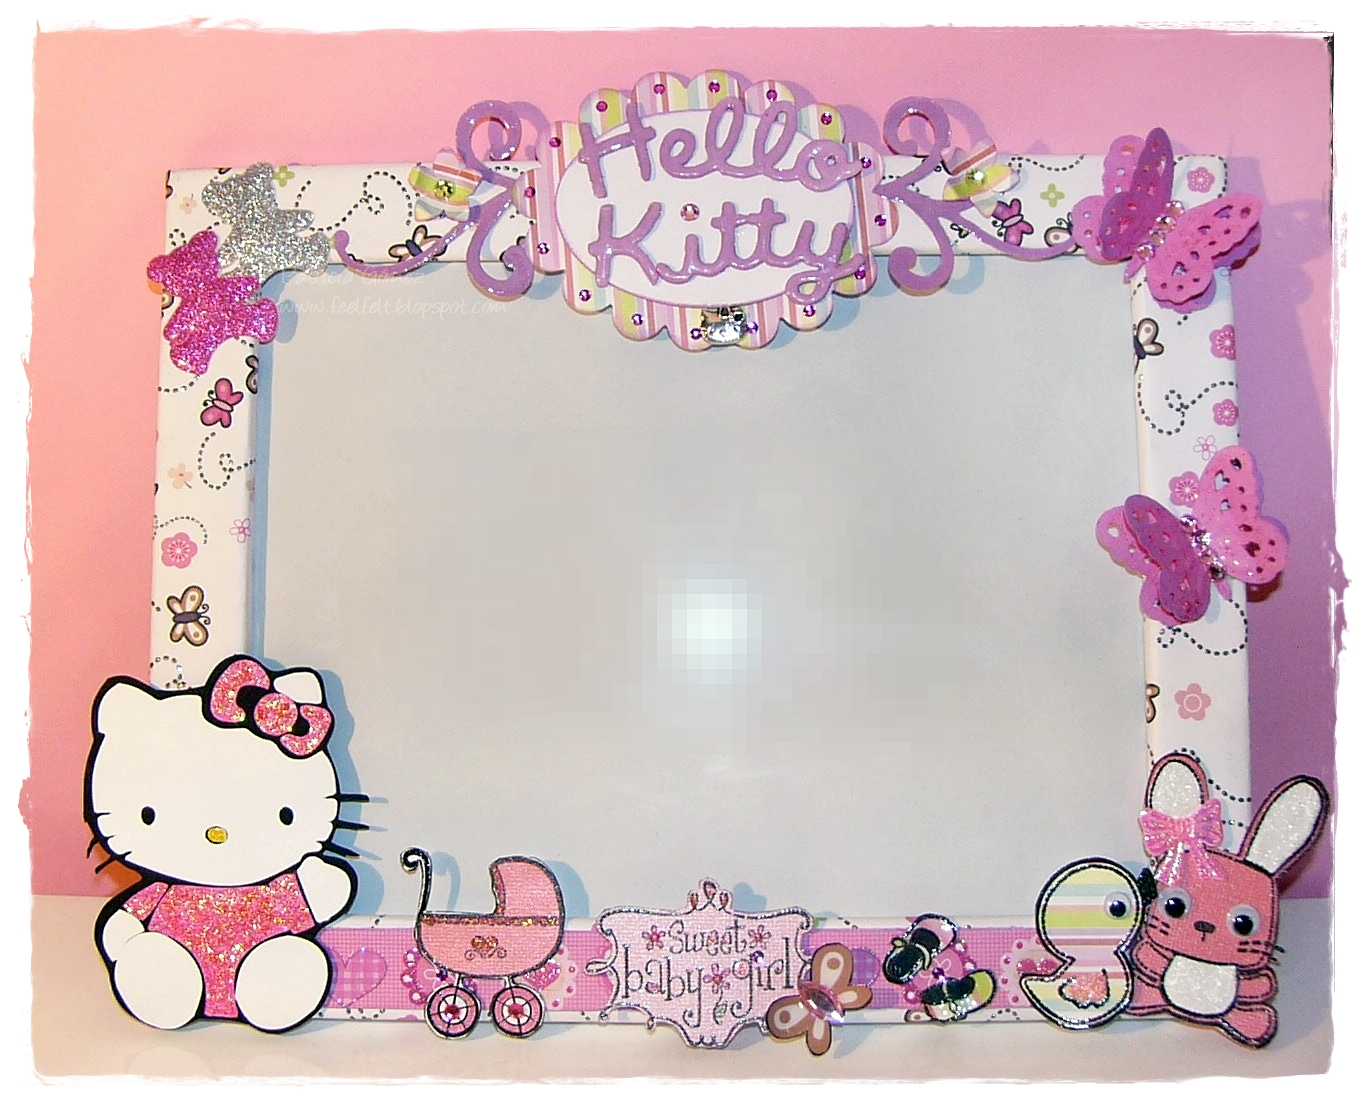 Feel felt hello kitty frame for Decoracion con marcos